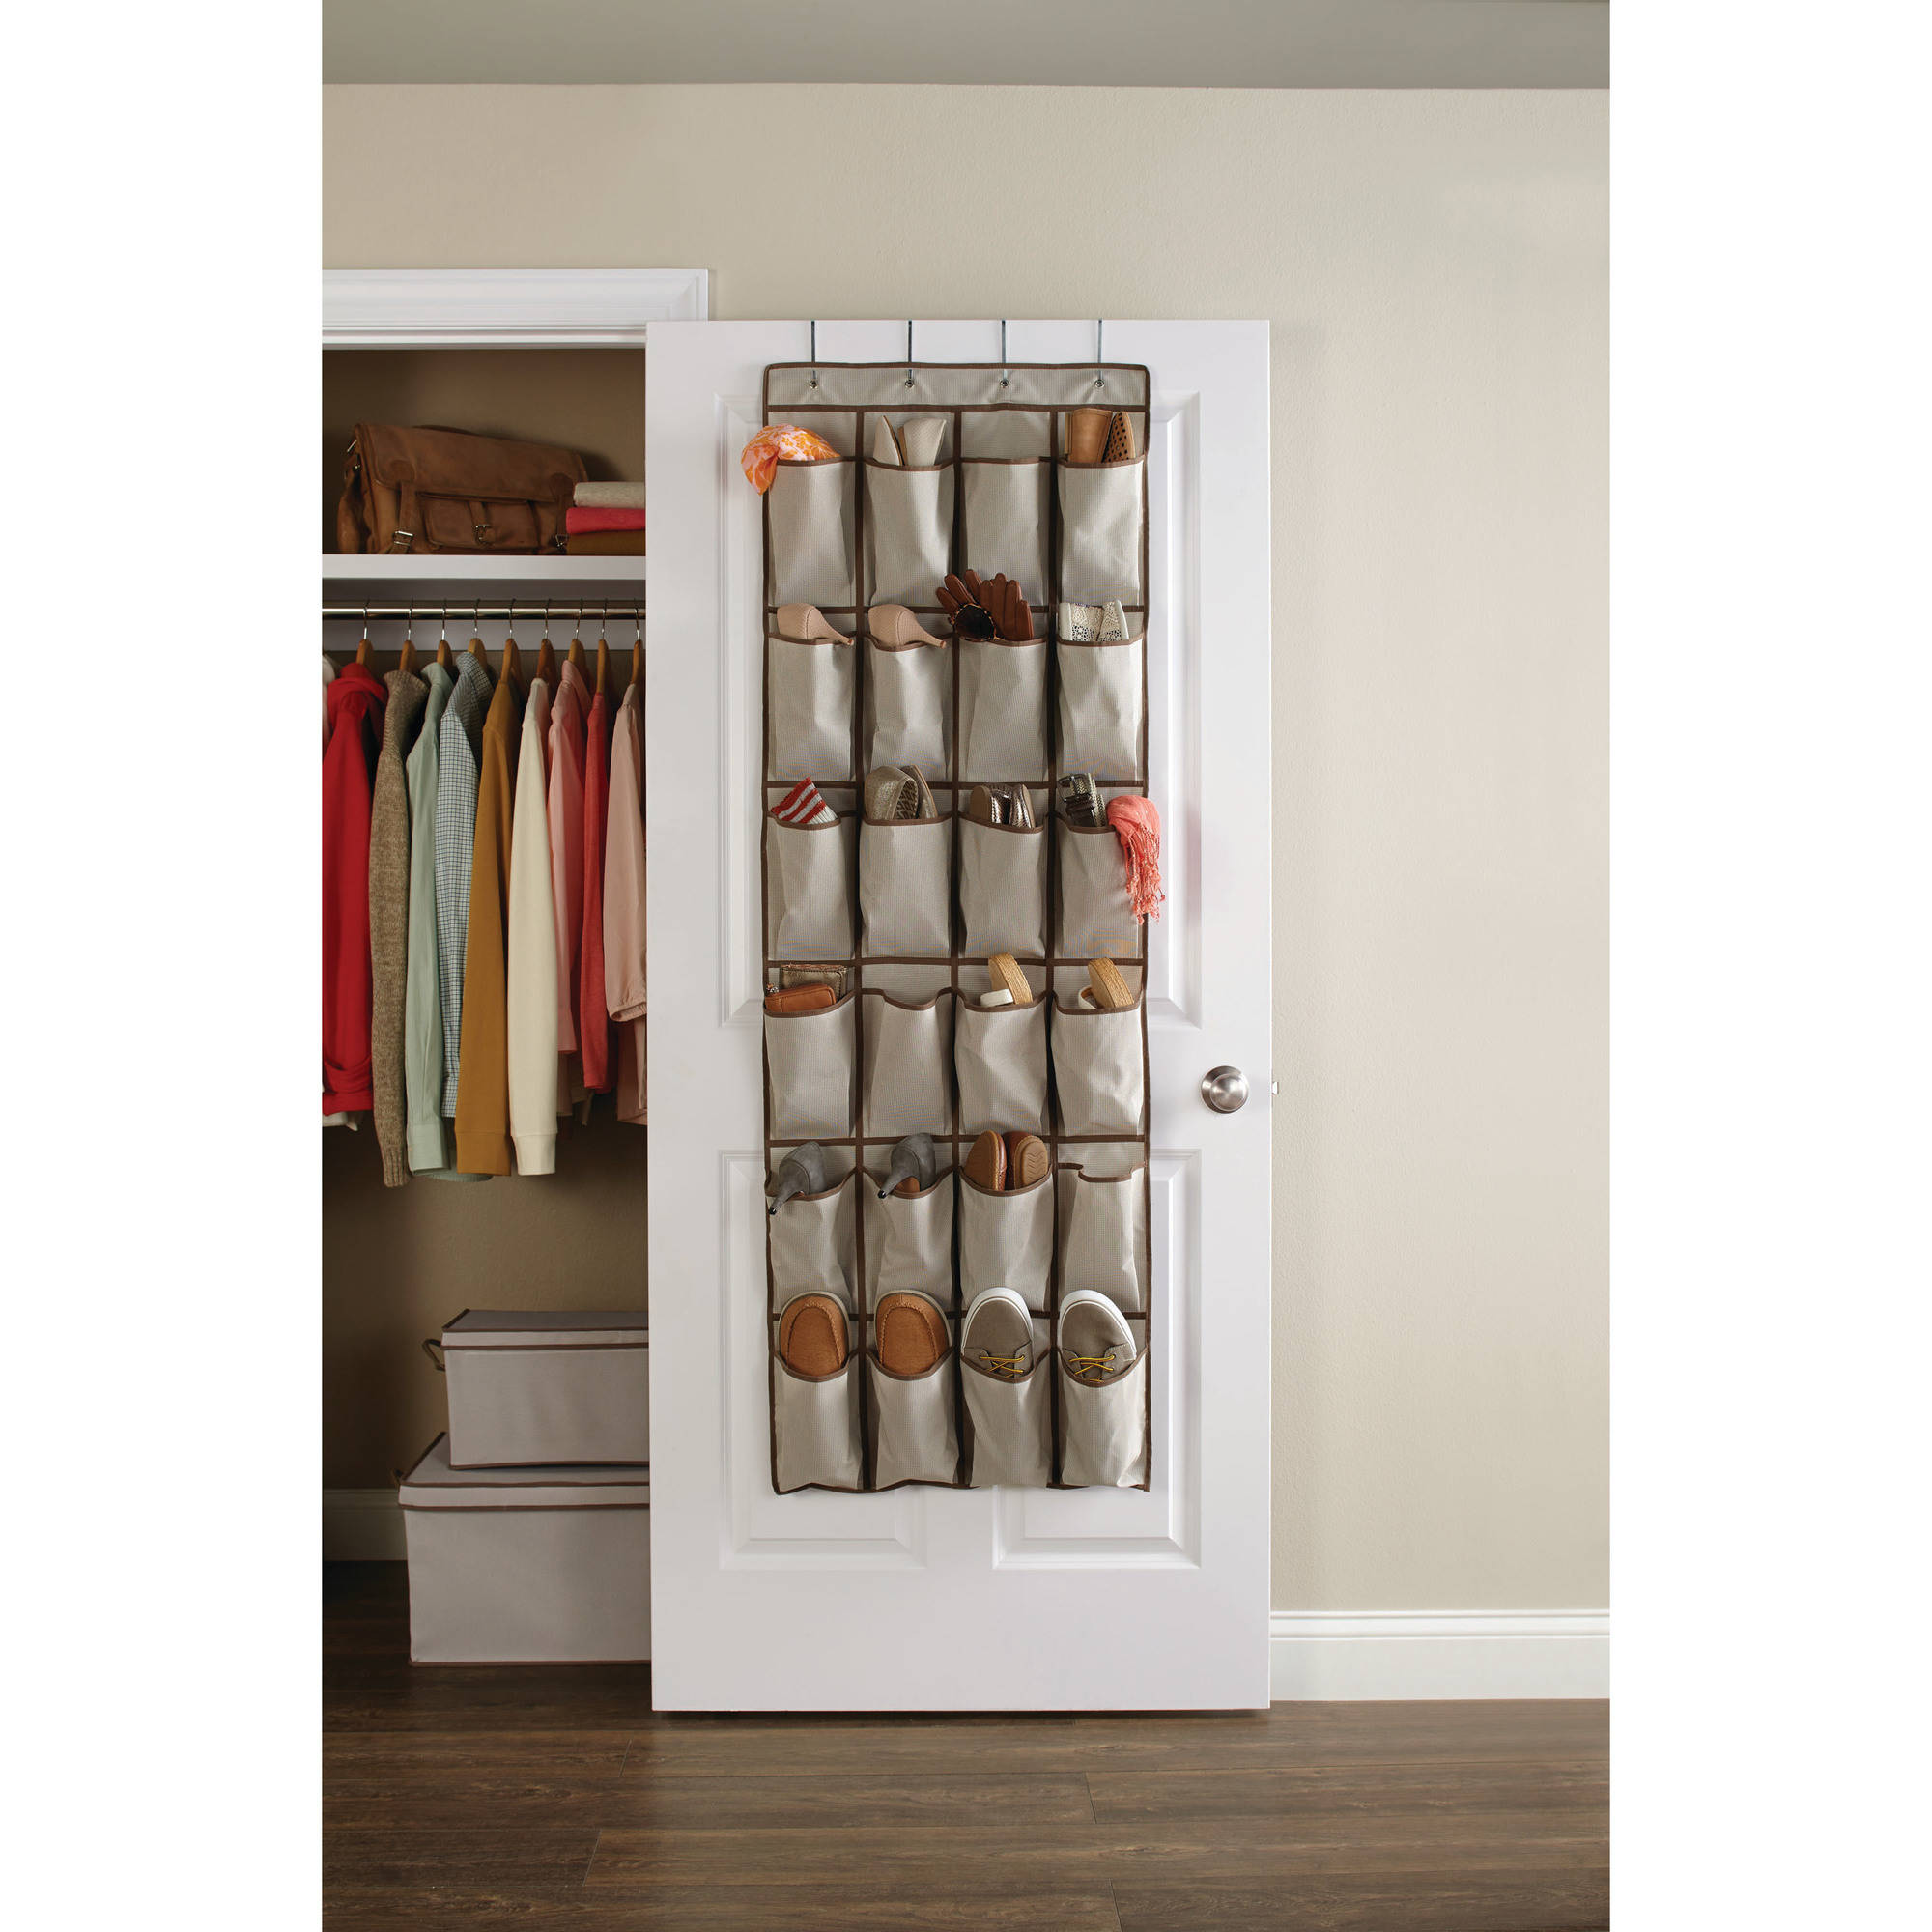 Good Better Homes And Gardens 24 Pocket Over The Door Shoe Organizer